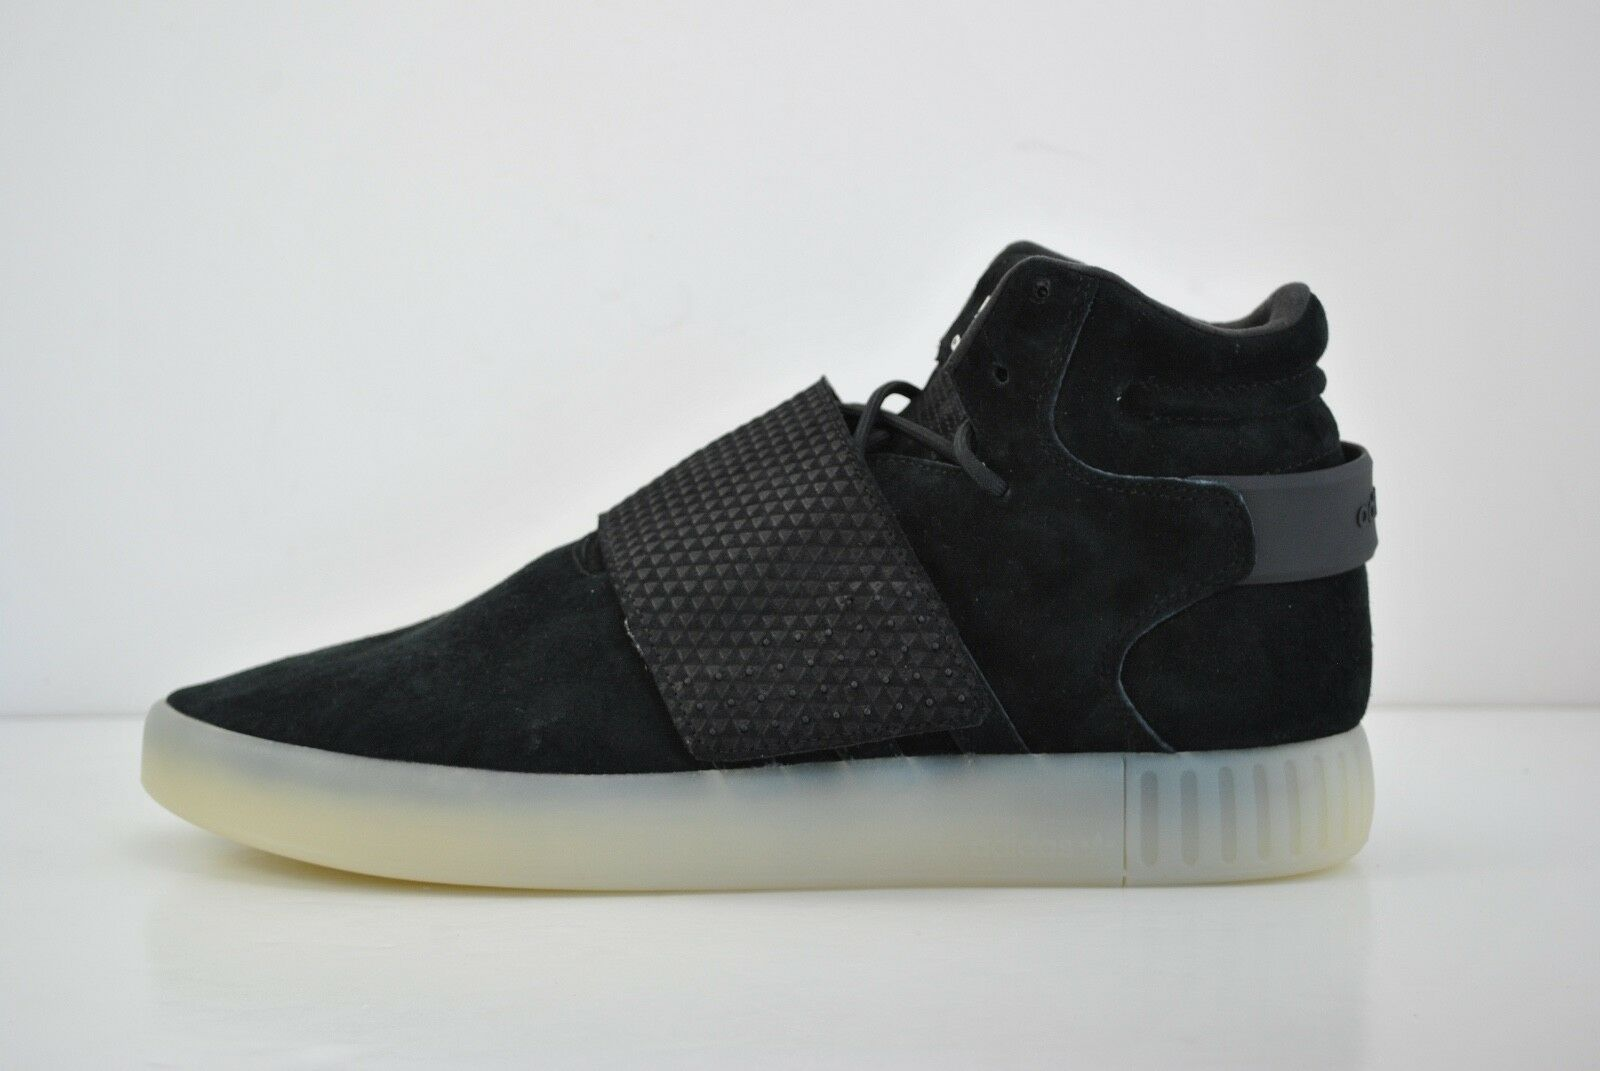 Mens Adidas Tubular Invader Strap Casual Shoes Sneakers Size 11.5 Black BB5037